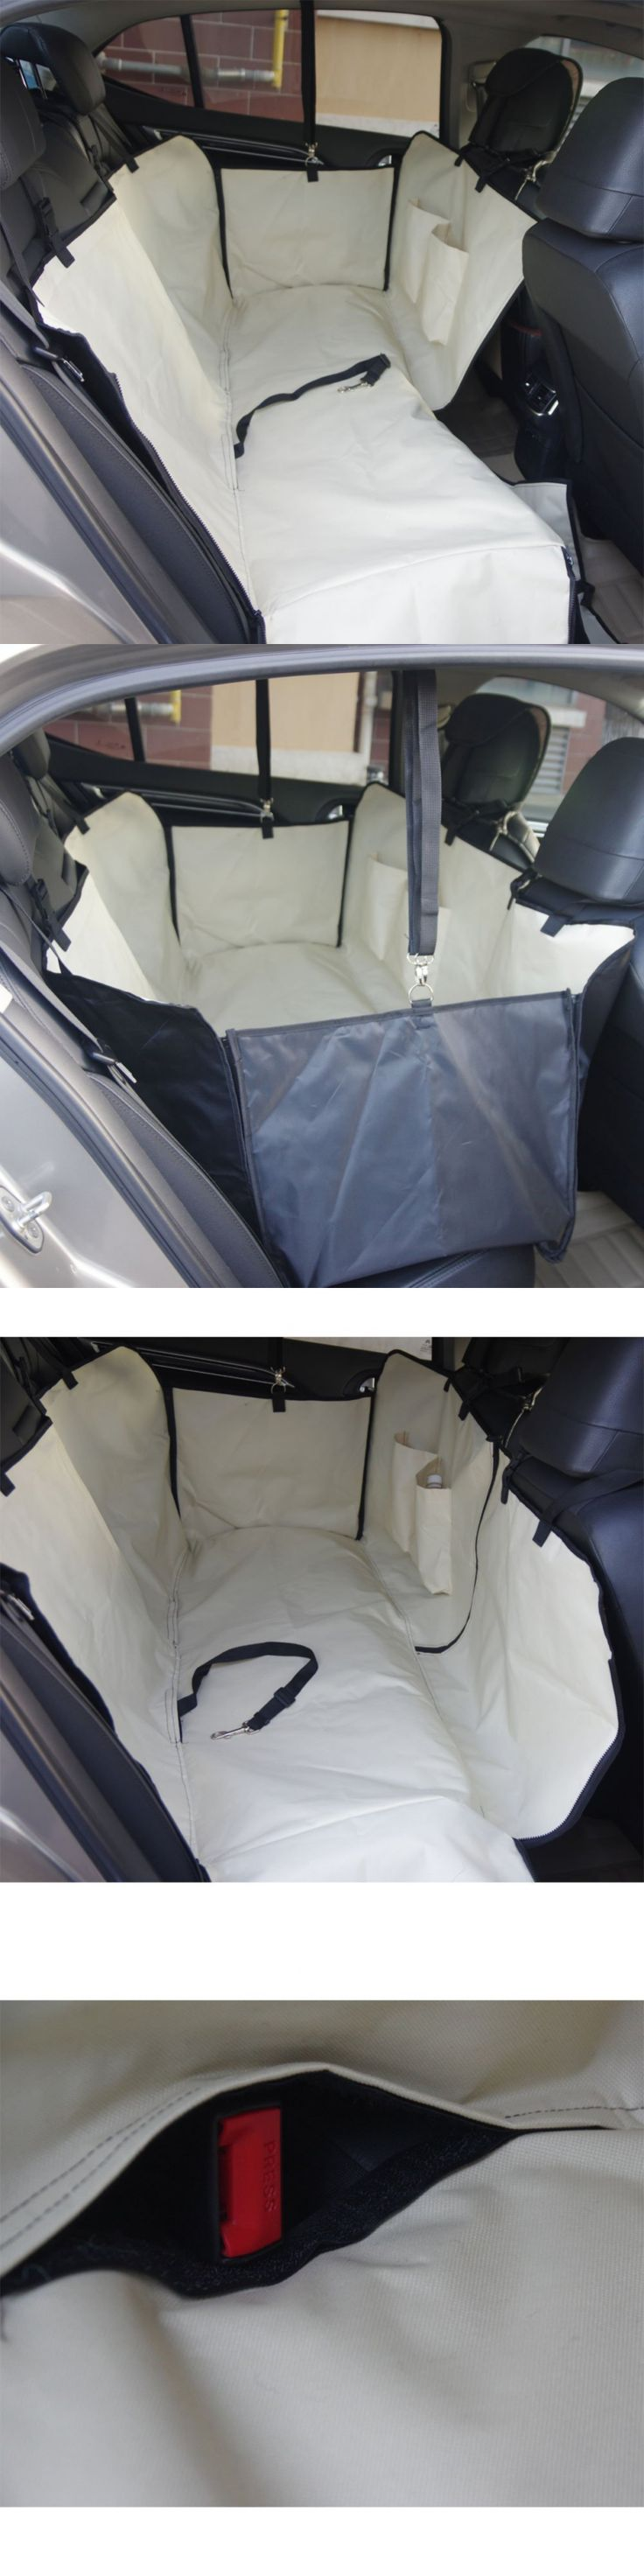 Car Seat Covers 117426: Ginntiona Dog Pet Car Seat Cover Waterproof Washable Hammock Protection For Cars -> BUY IT NOW ONLY: $31.11 on eBay!